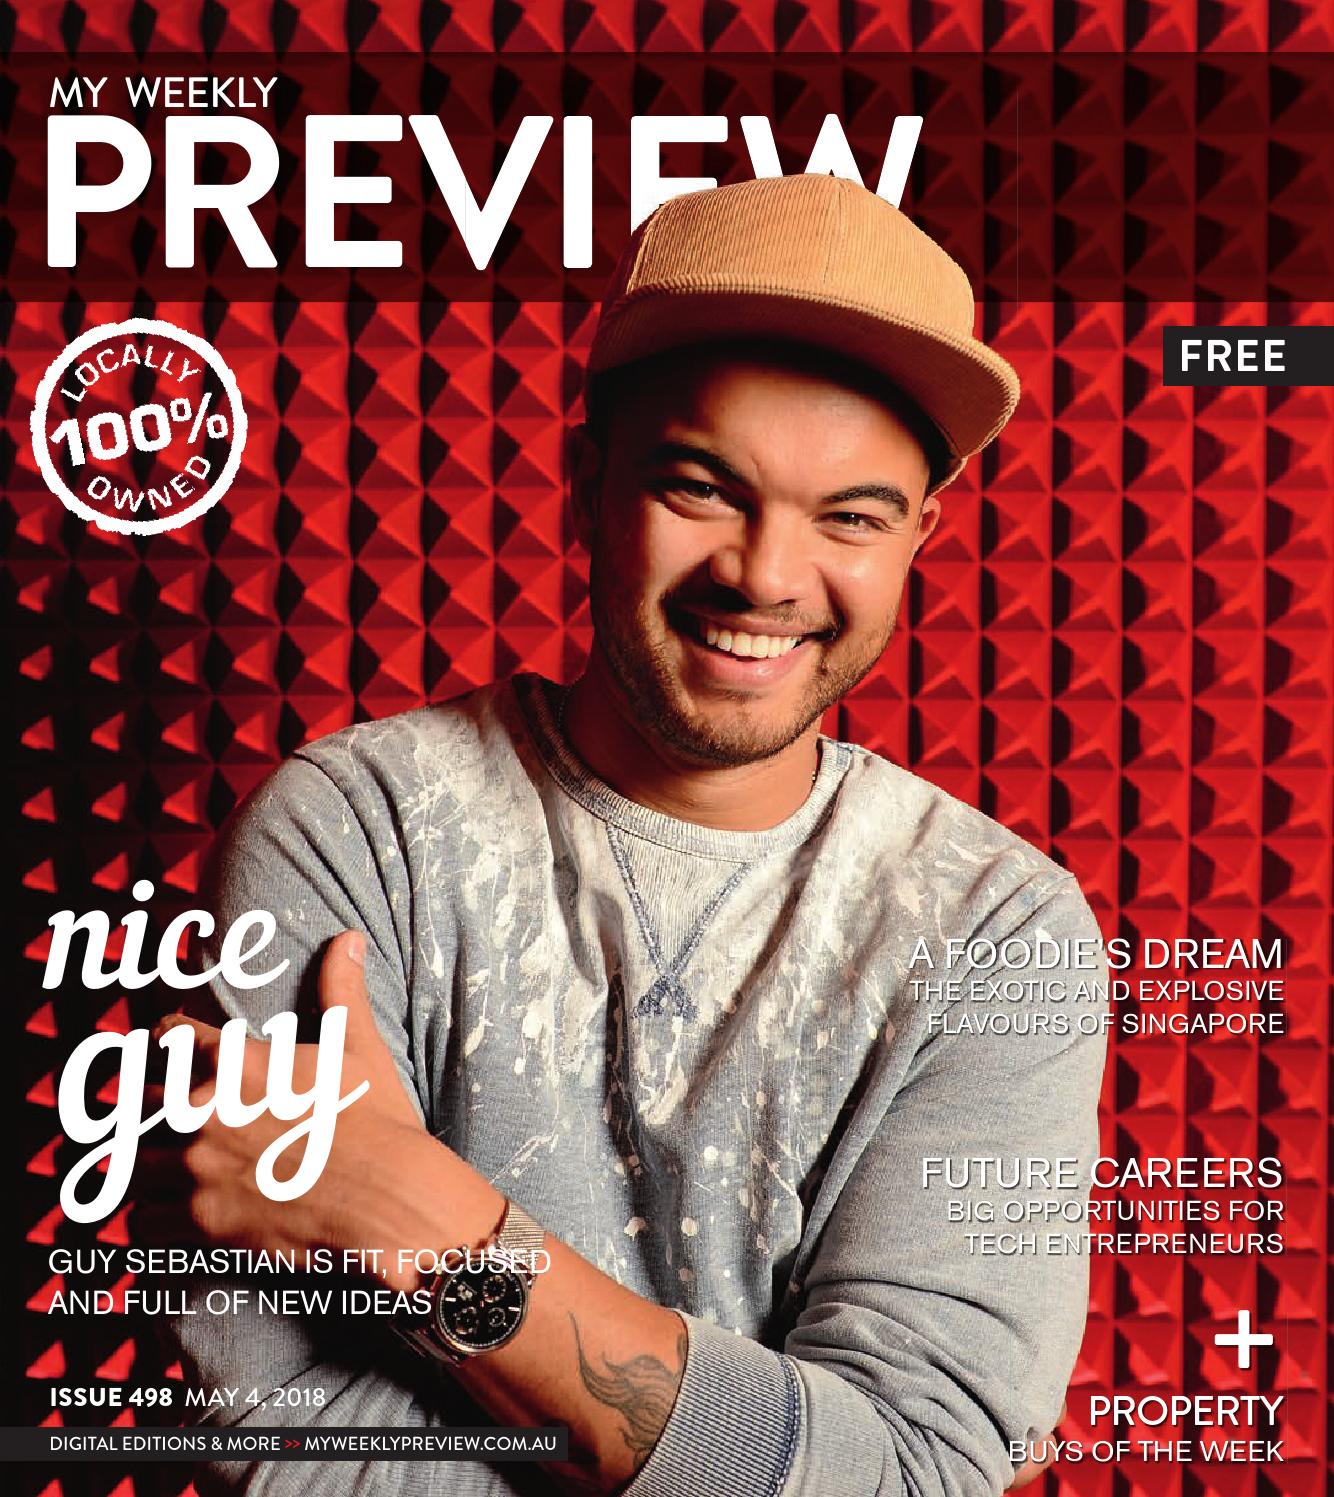 7ad38cb3981 My Weekly Preview Issue 498 by My Weekly Preview - issuu